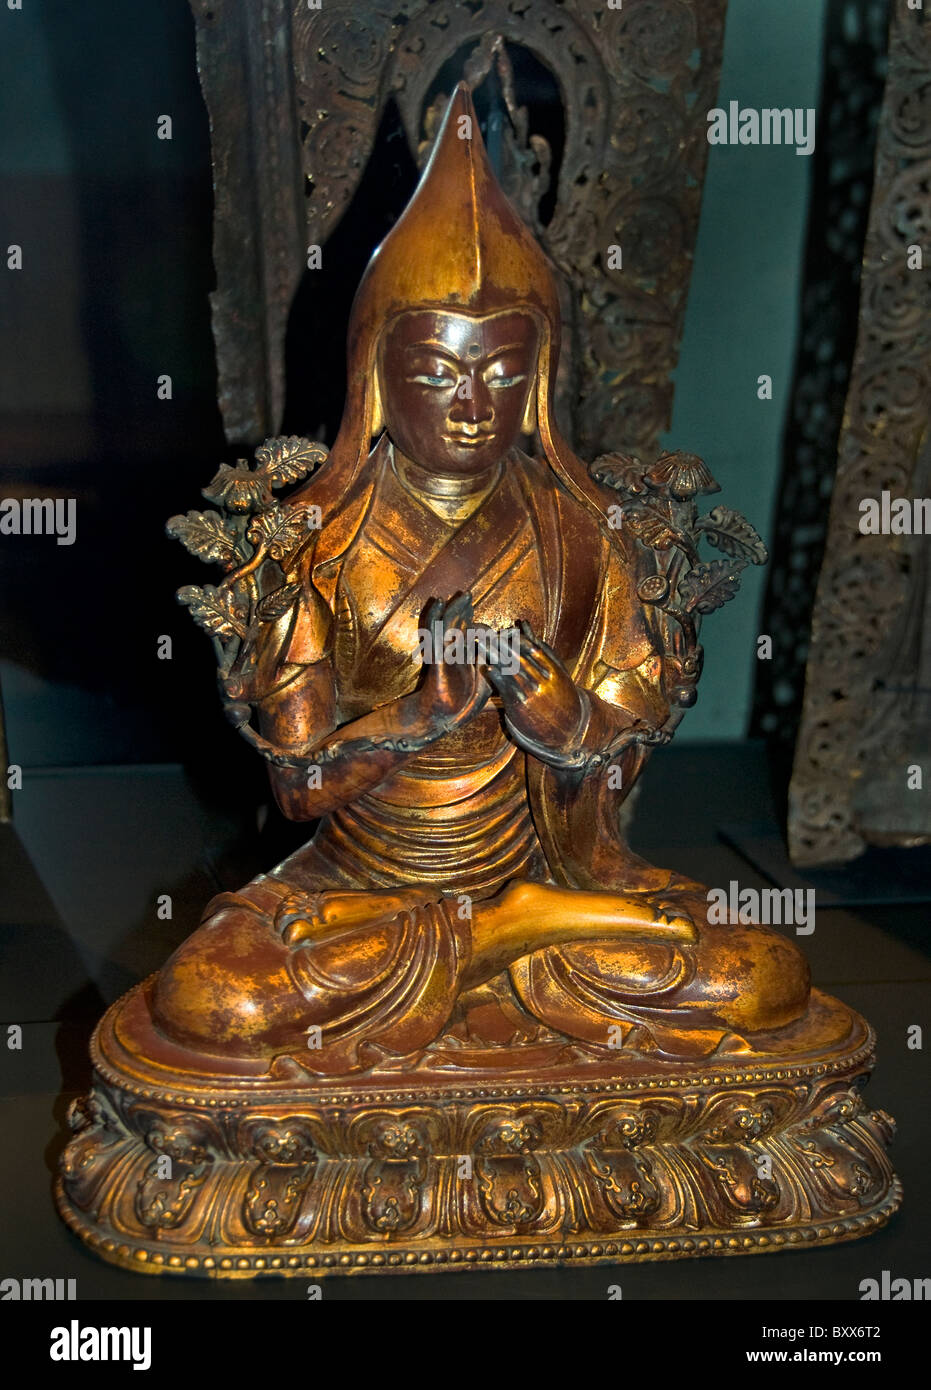 Yellow Hat manner monk Tsongkhapa 14th cent  Tibet Tibetan  Dahai Lama is the head of this group statue 19th cent - Stock Image